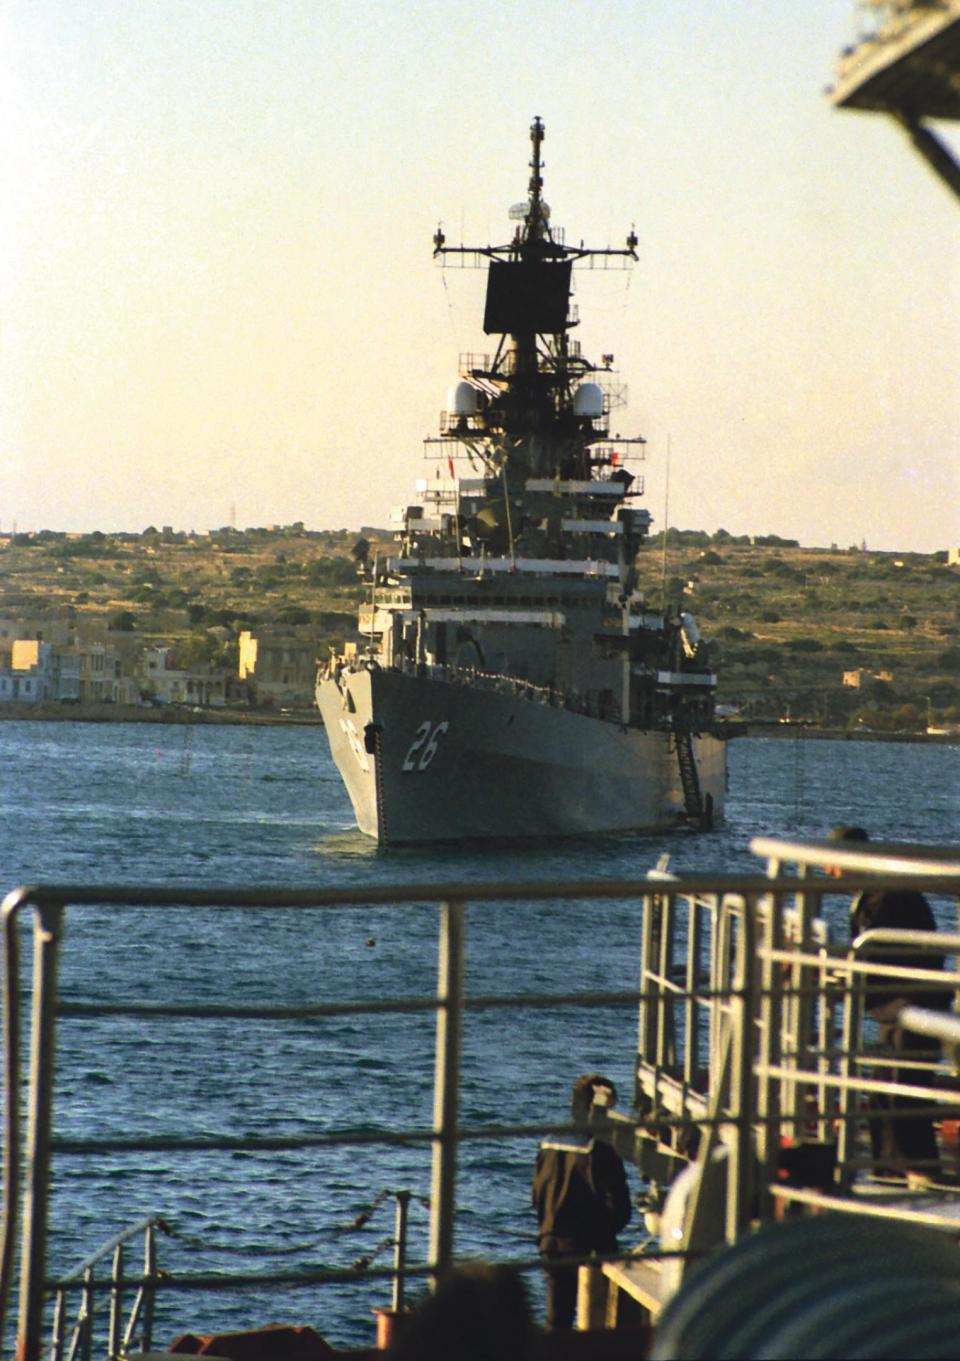 The US Navy ship docked in Birżebbuġa for the summit.